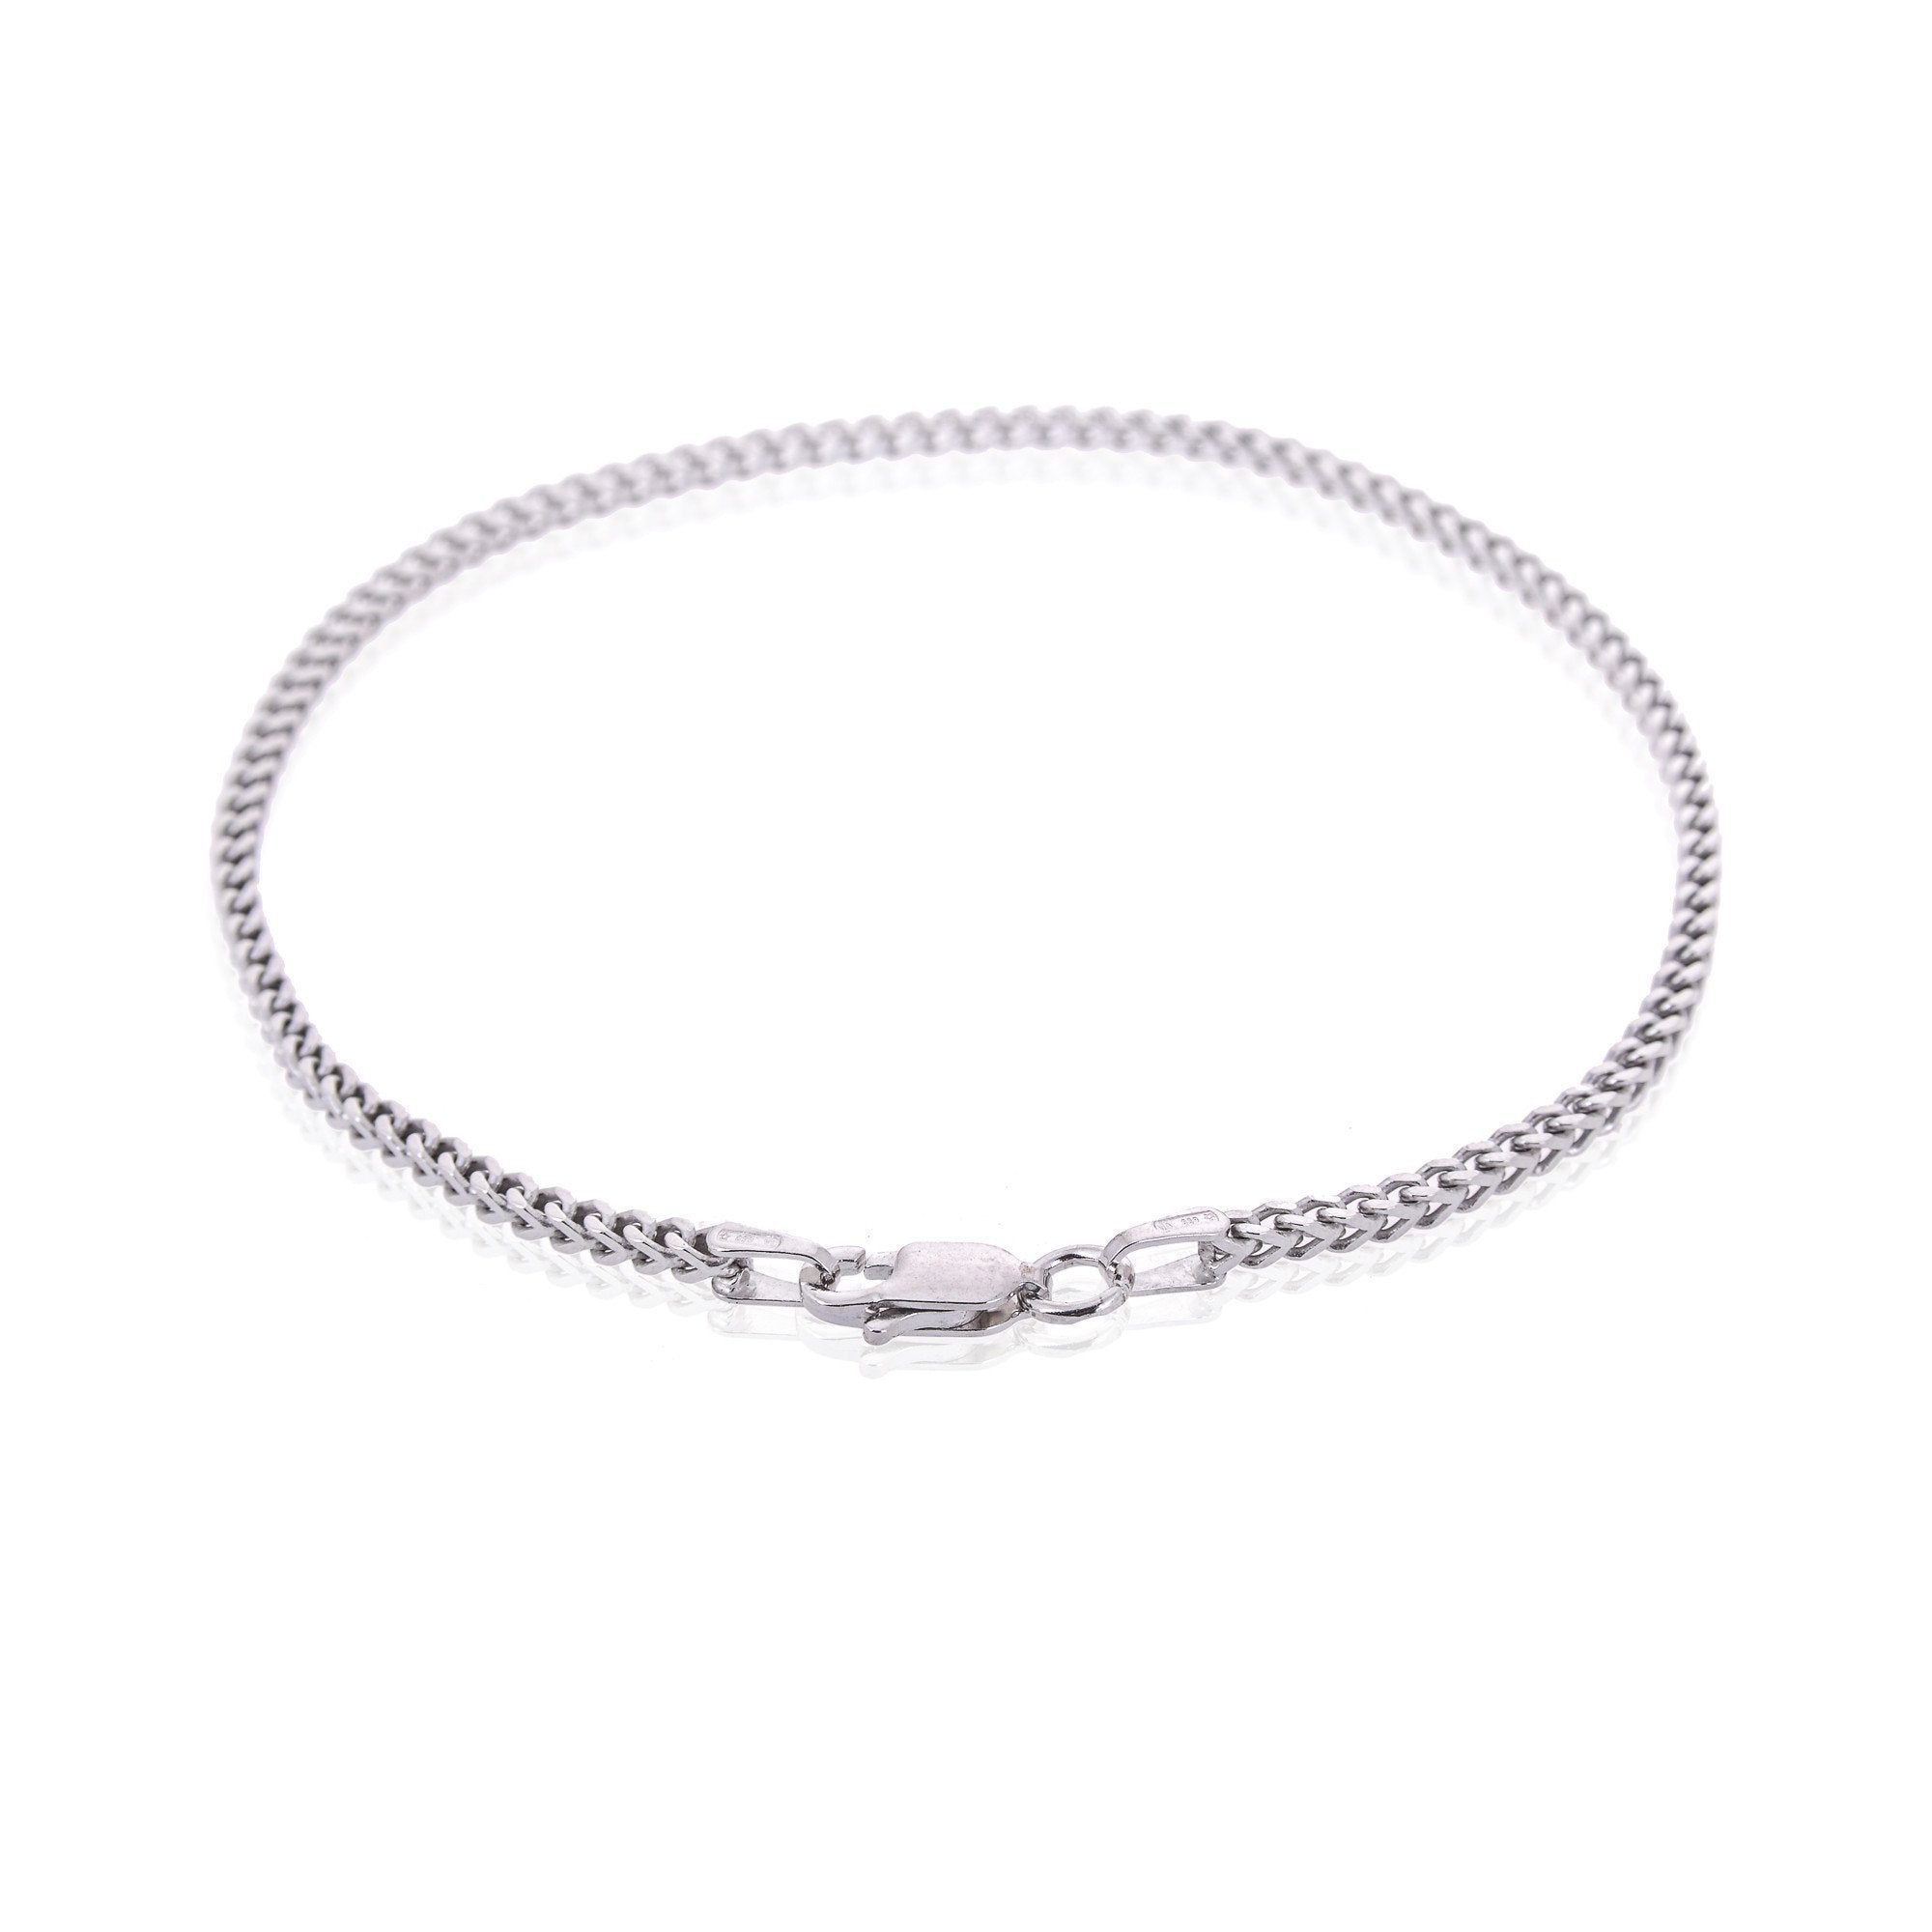 sterling silver men s curb chain necklace